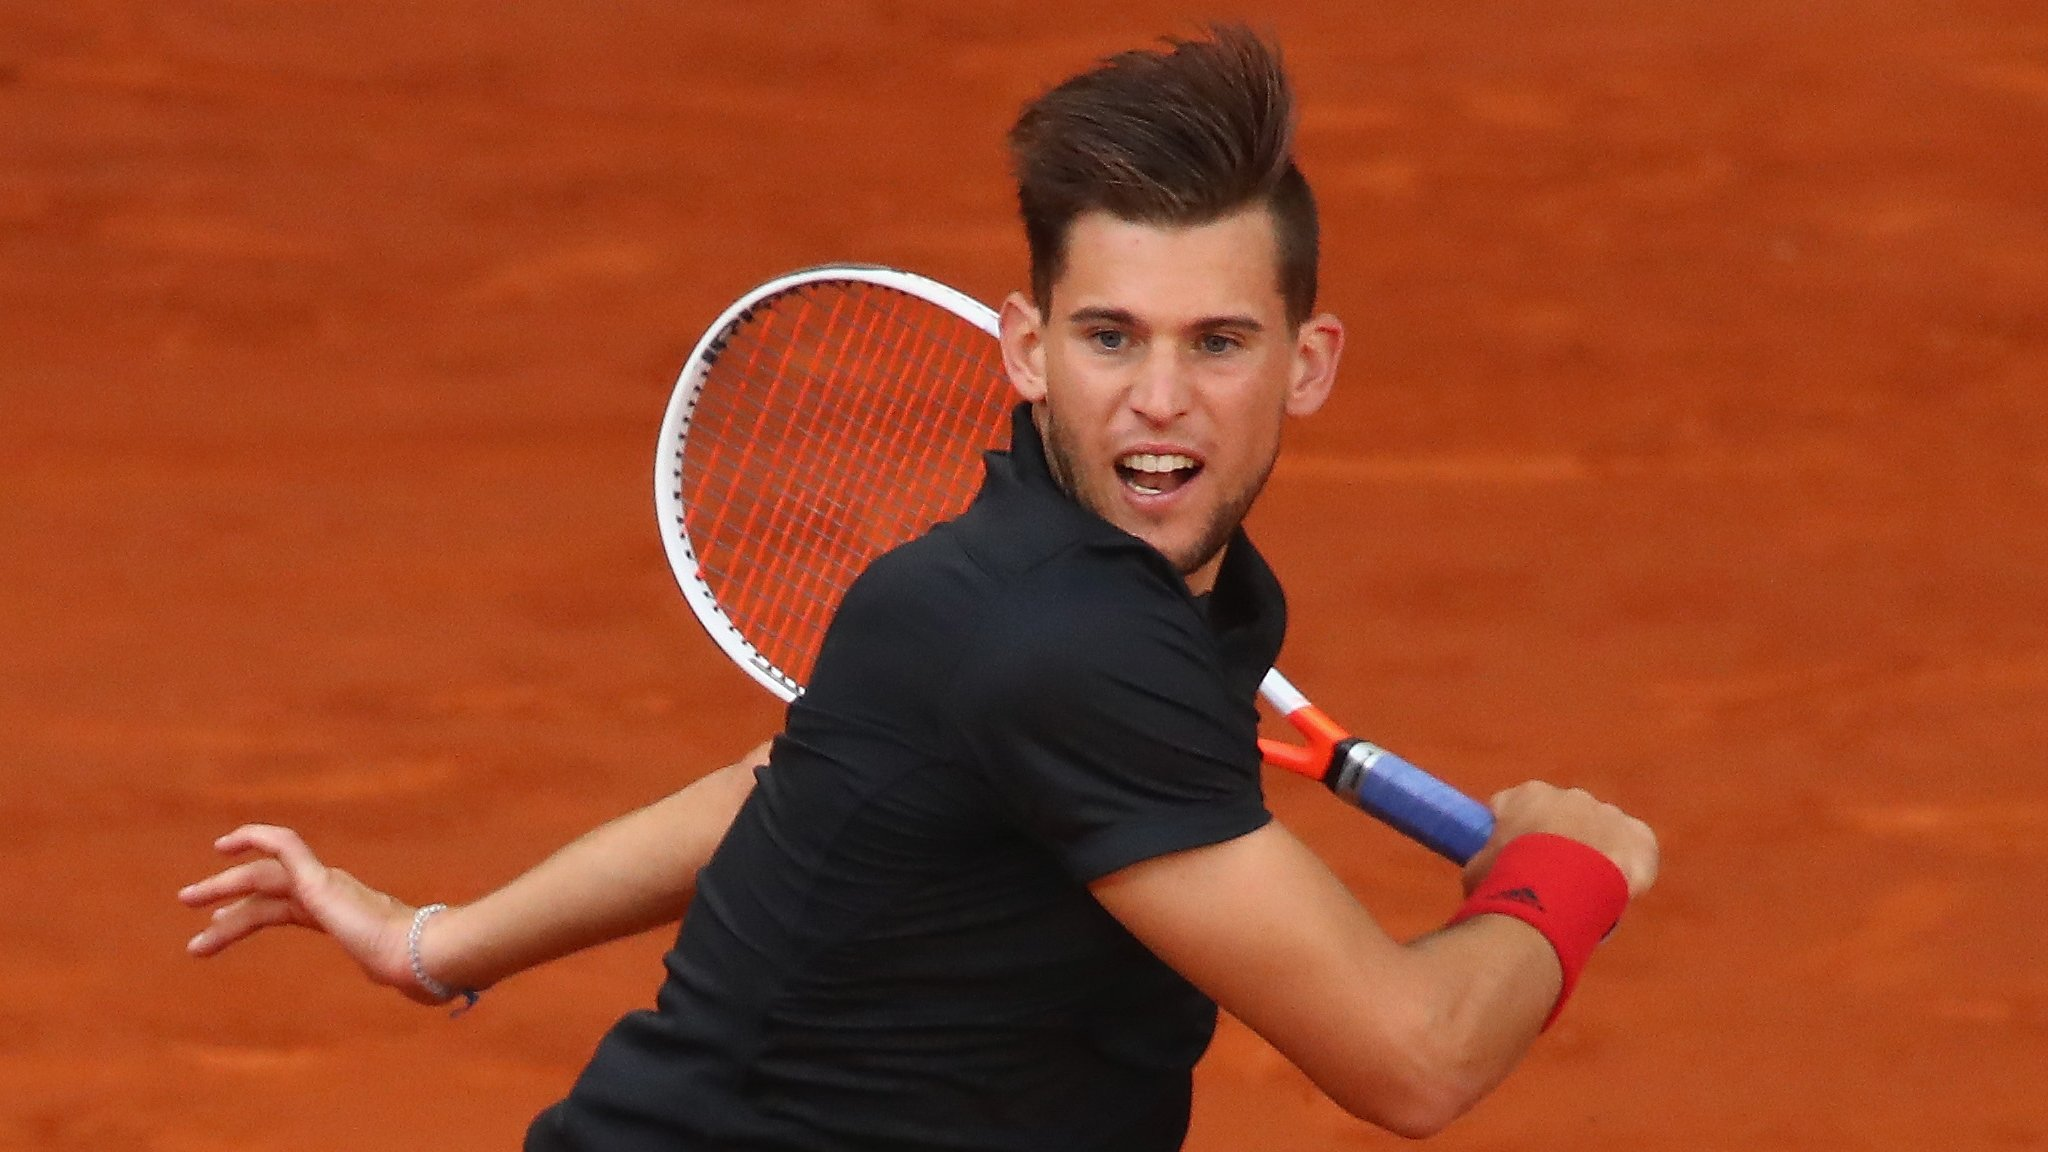 Lyon Open: Dominic Thiem takes title with victory over Gilles Simon